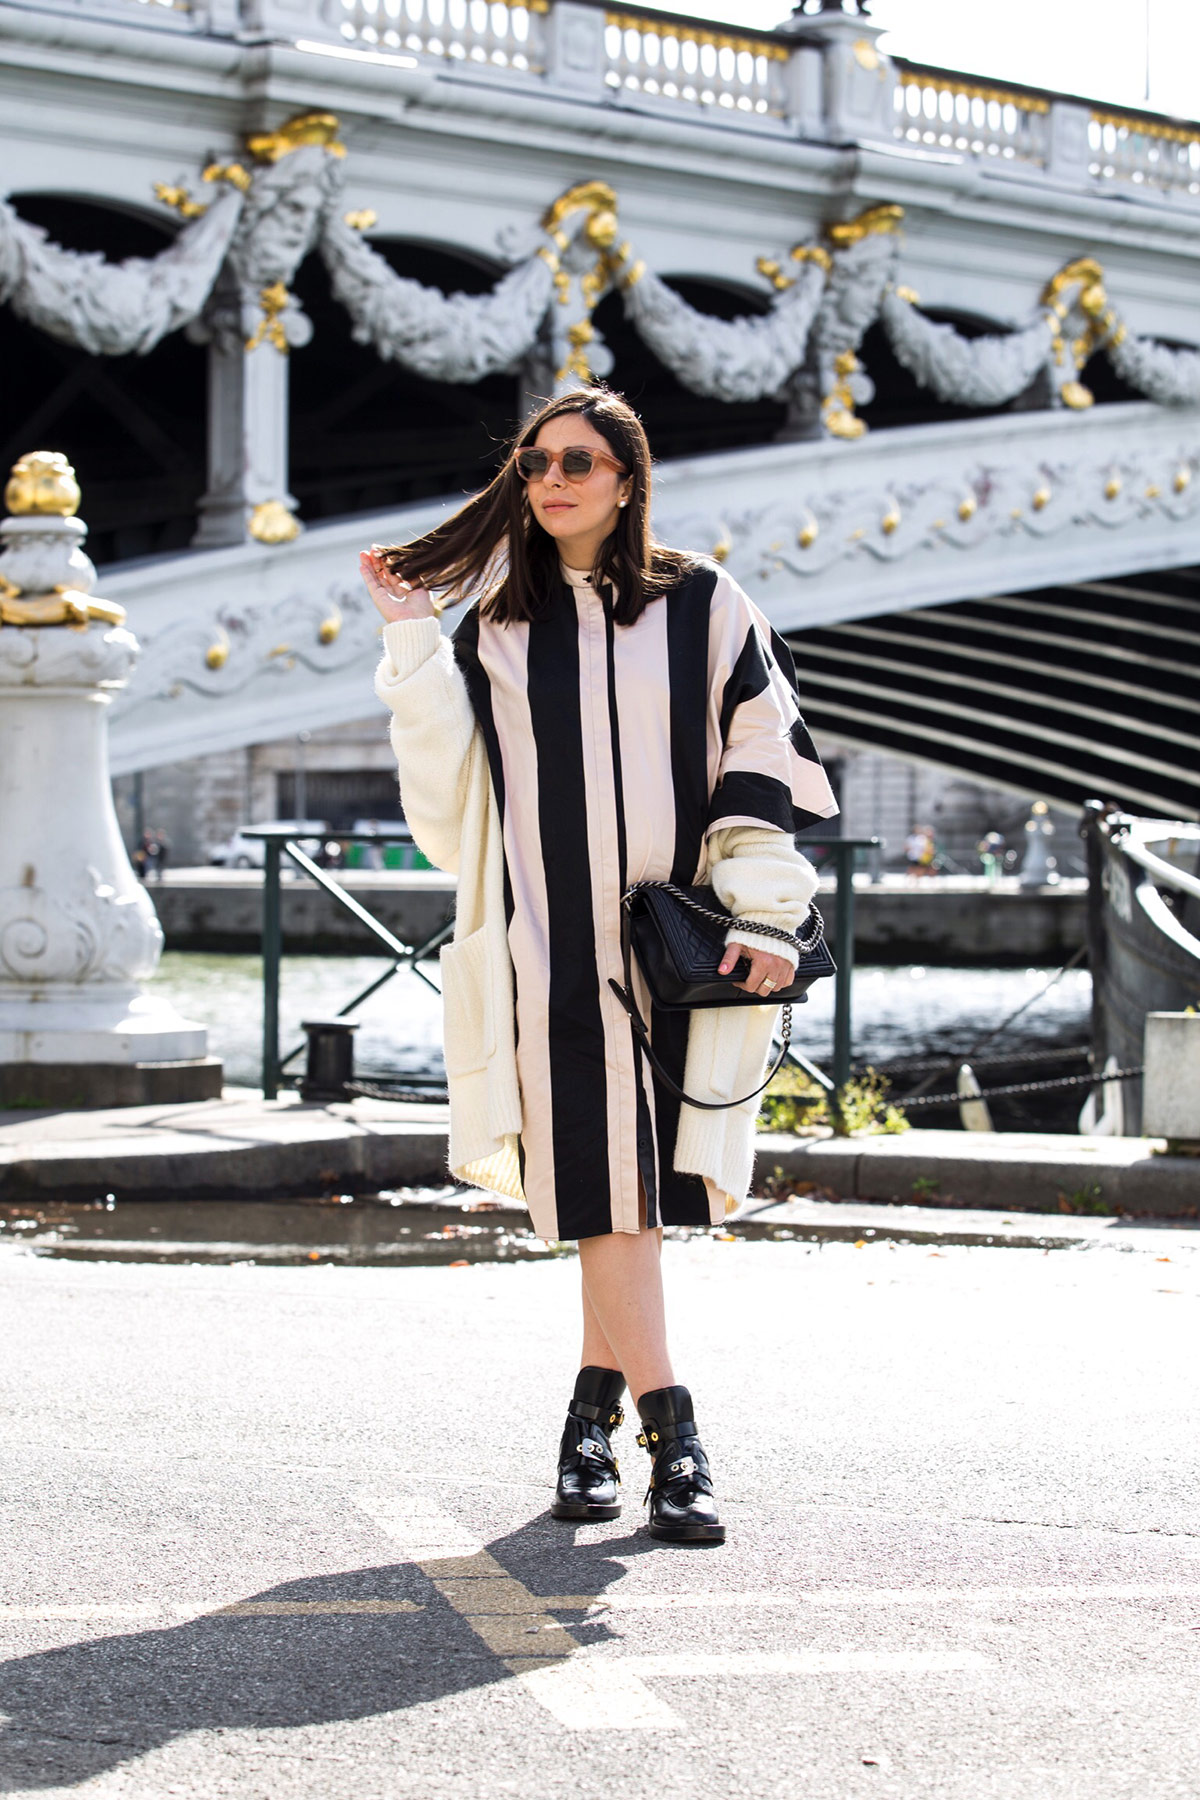 stripes and ruffles dress for Paris Fashion Week by Stella Asteria - Fashion & Lifestyle Blogger